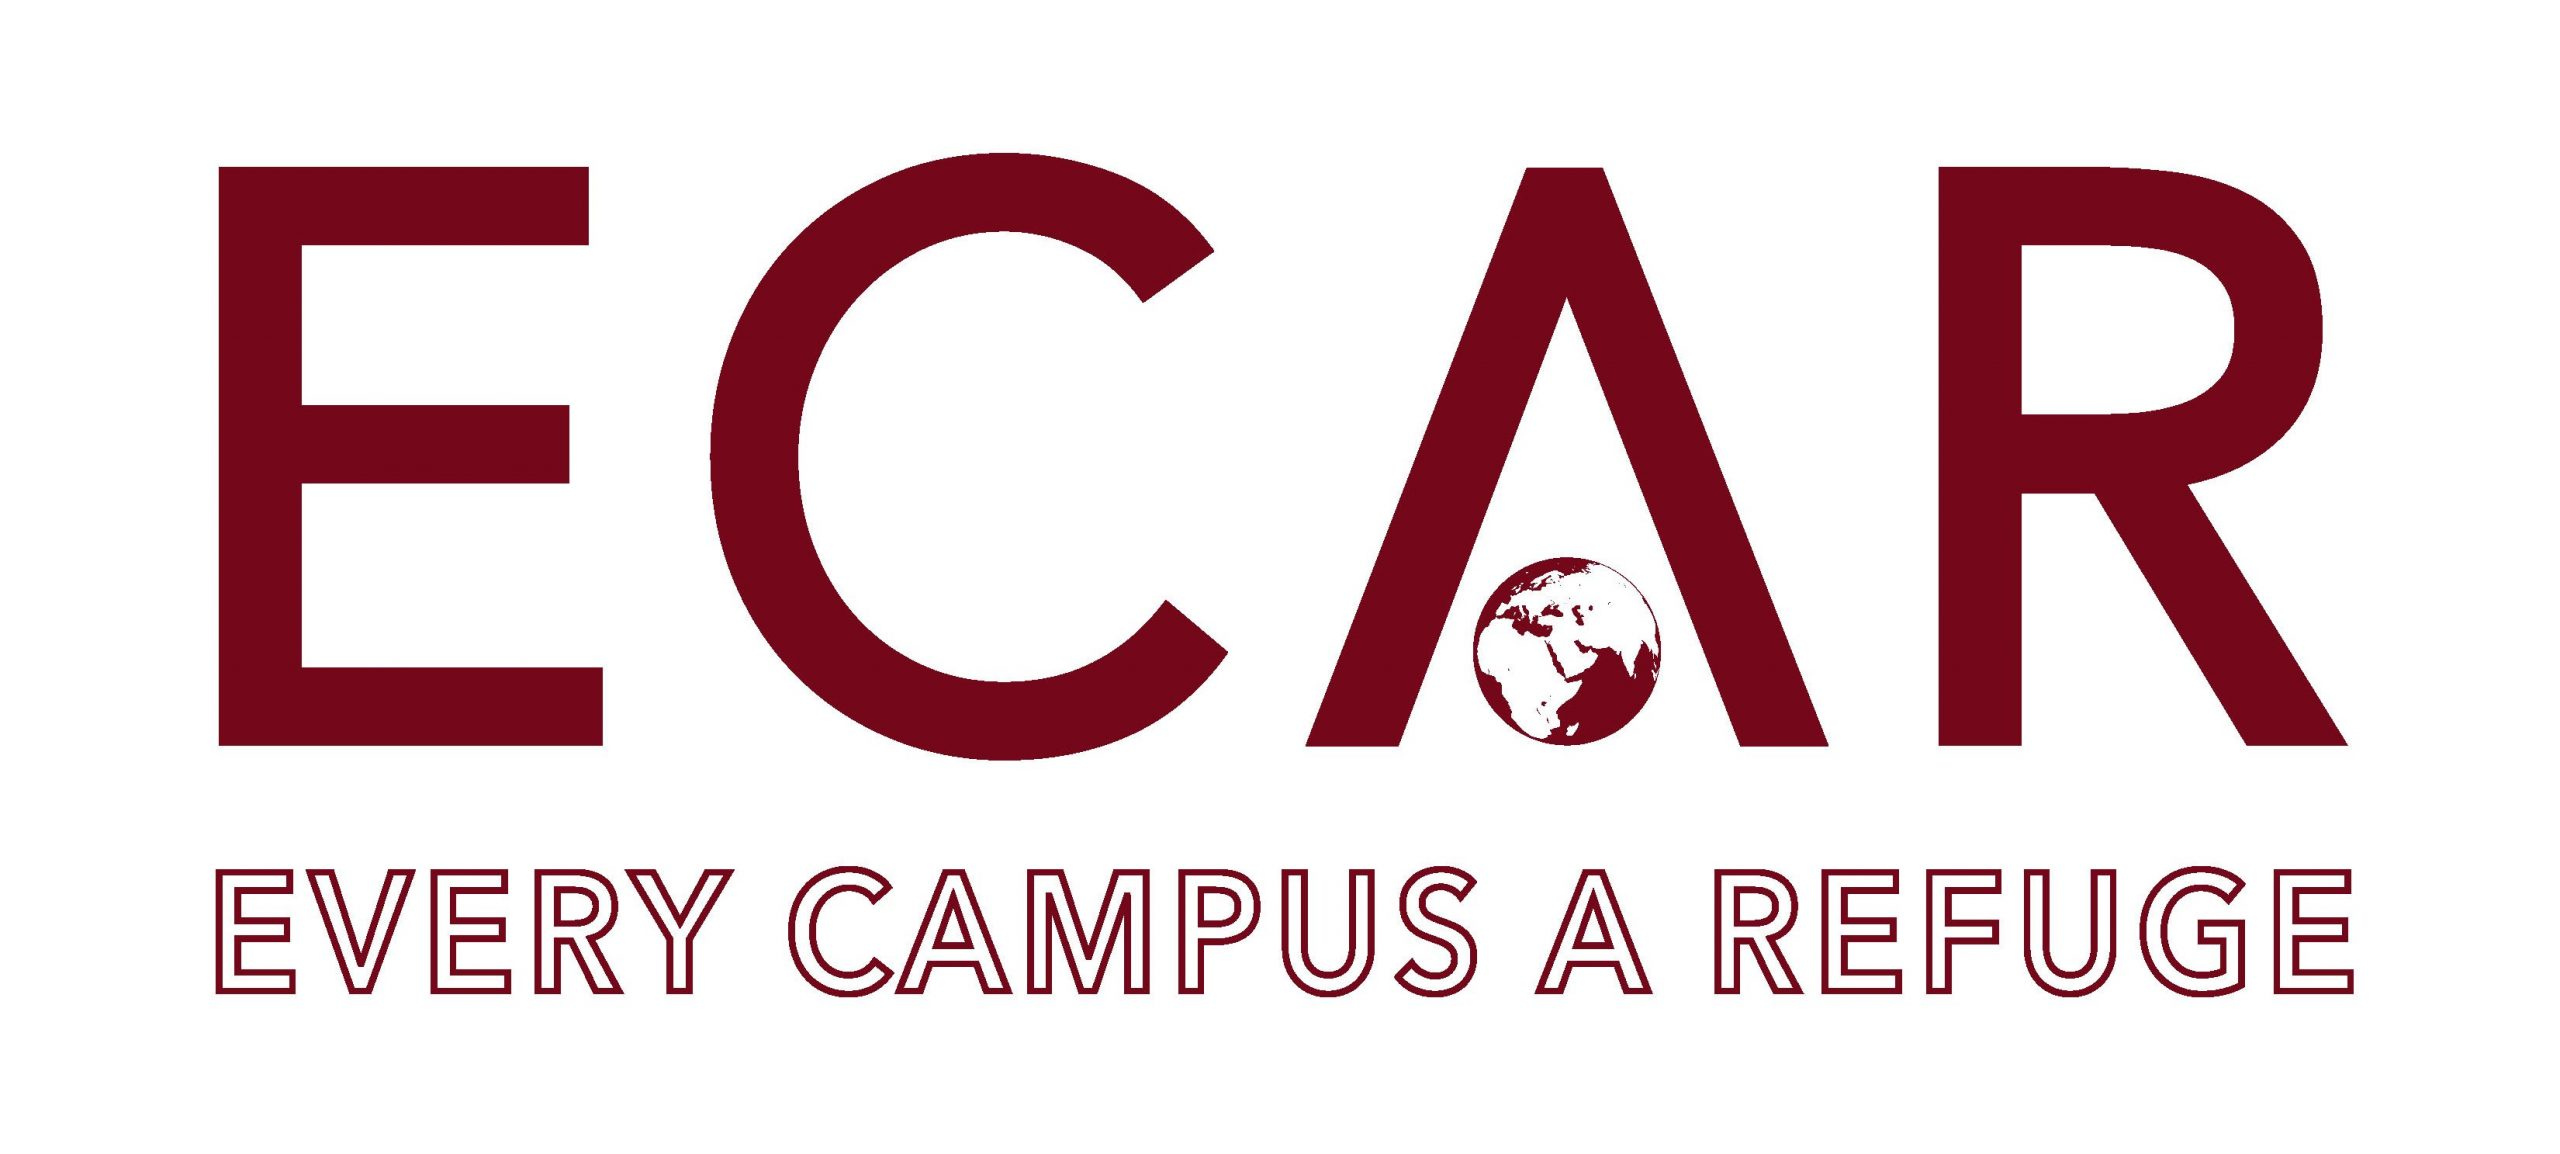 EVERY CAMPUS A REFUGE®